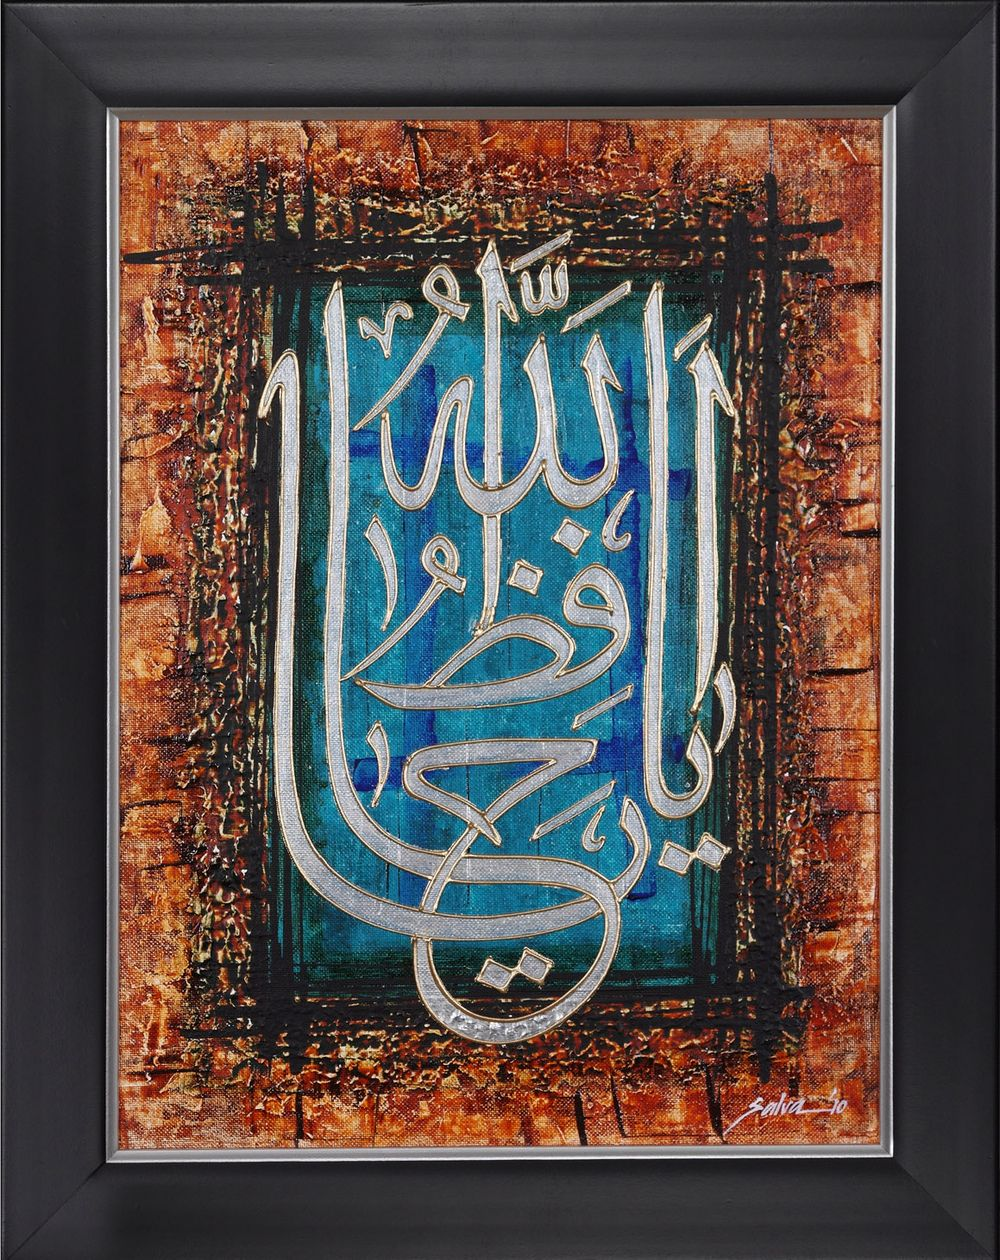 Desertrose Paintings Salva Rasool Art Beyond Copyright Disclaimer I Do Not Own This Pin Kaligrafi Islam Painting Seni Islamis